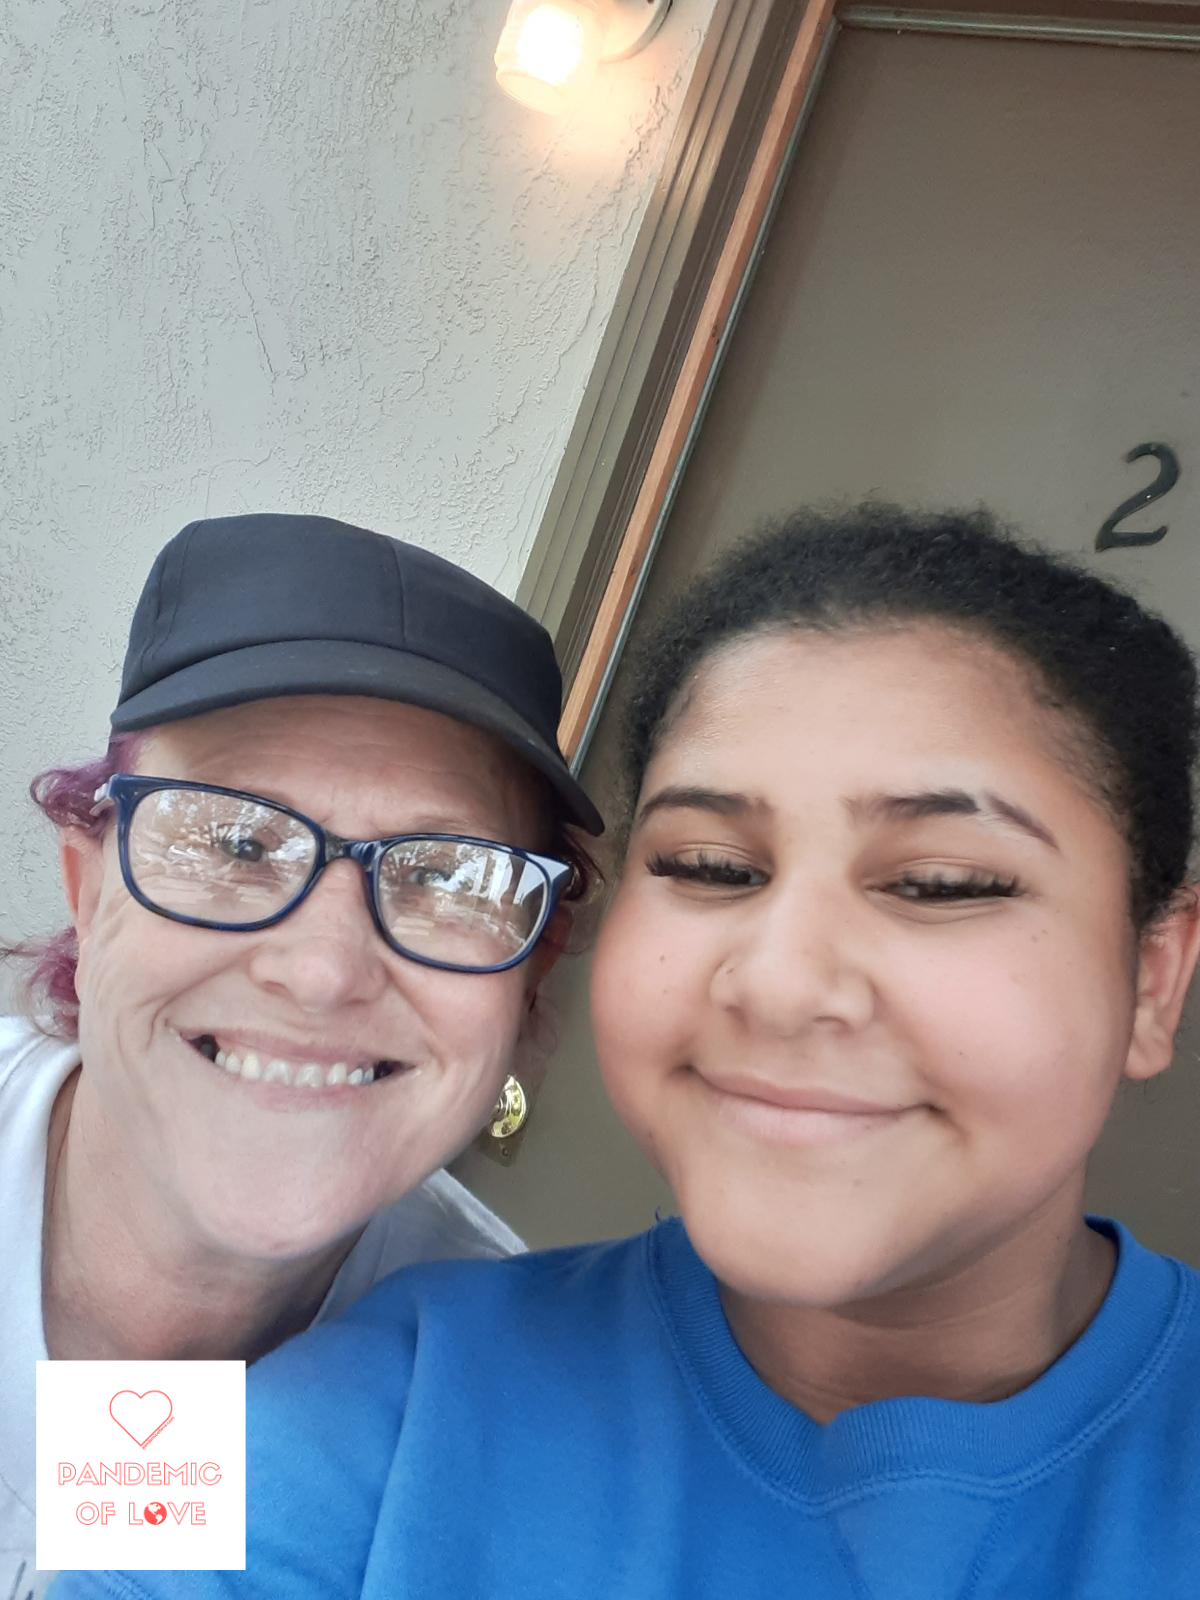 Traci and her daughter